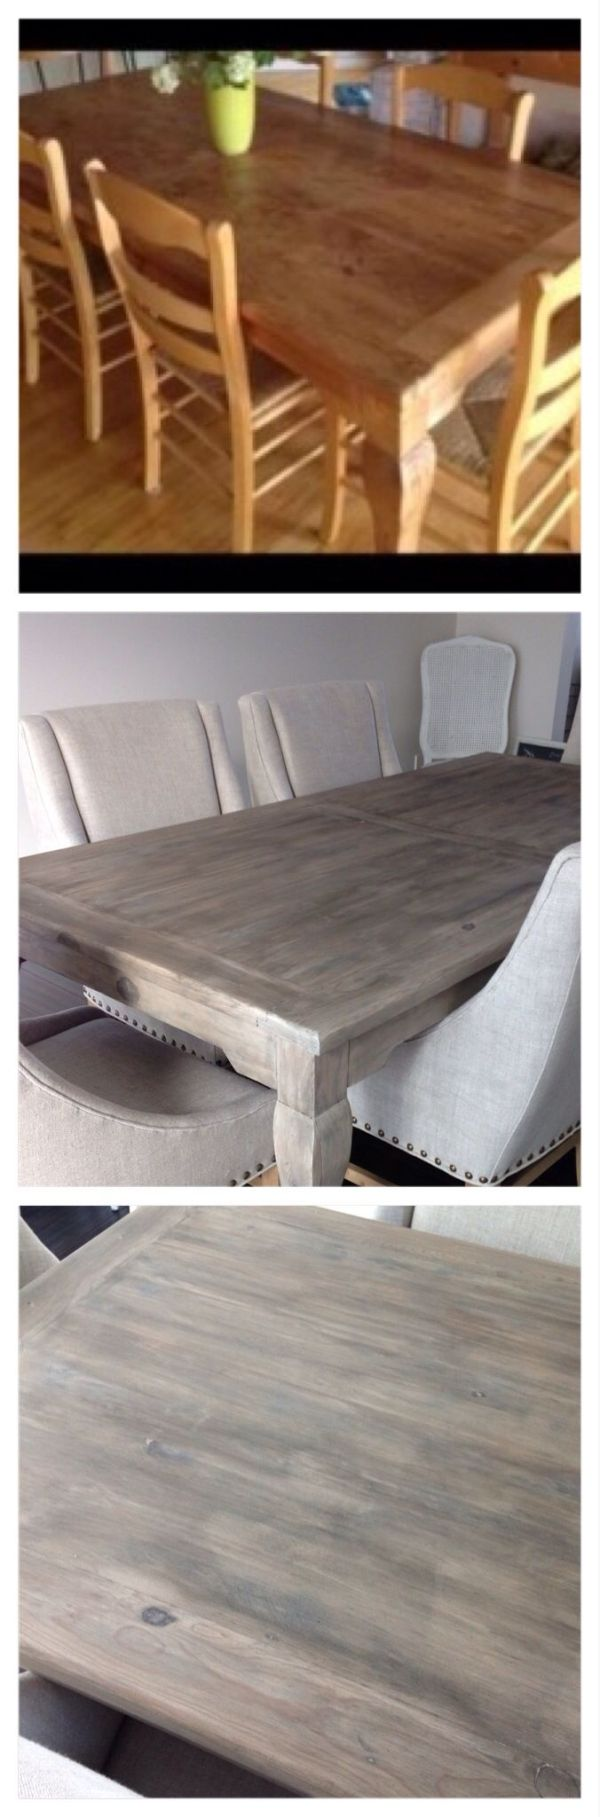 Diy restoration hardware finish craigslist table for Affordable furniture repair